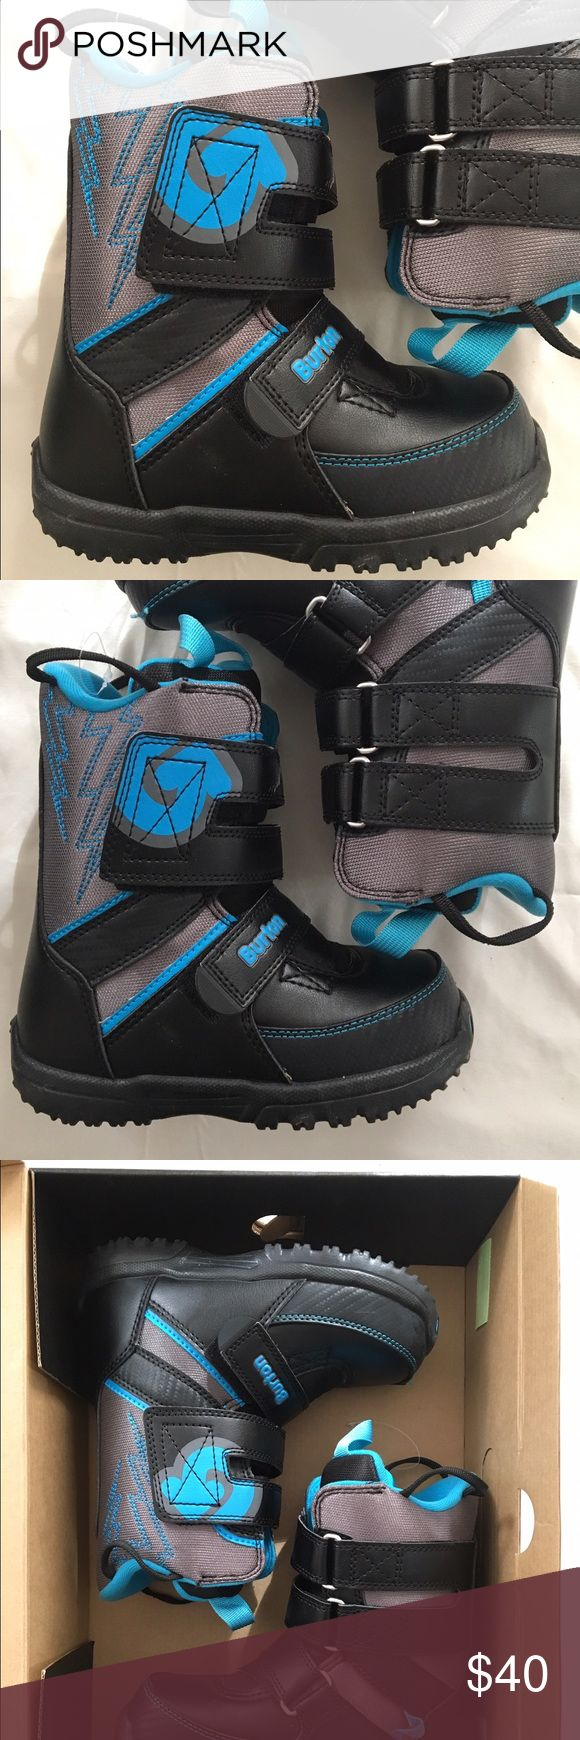 SALE: Burton Grom Snowboarding Boots Little kid's Burton Grom snowboarding boots.  Blue and black, worn only one time.  Size 1.  Non-smoking environment. Burton Shoes Rain & Snow Boots